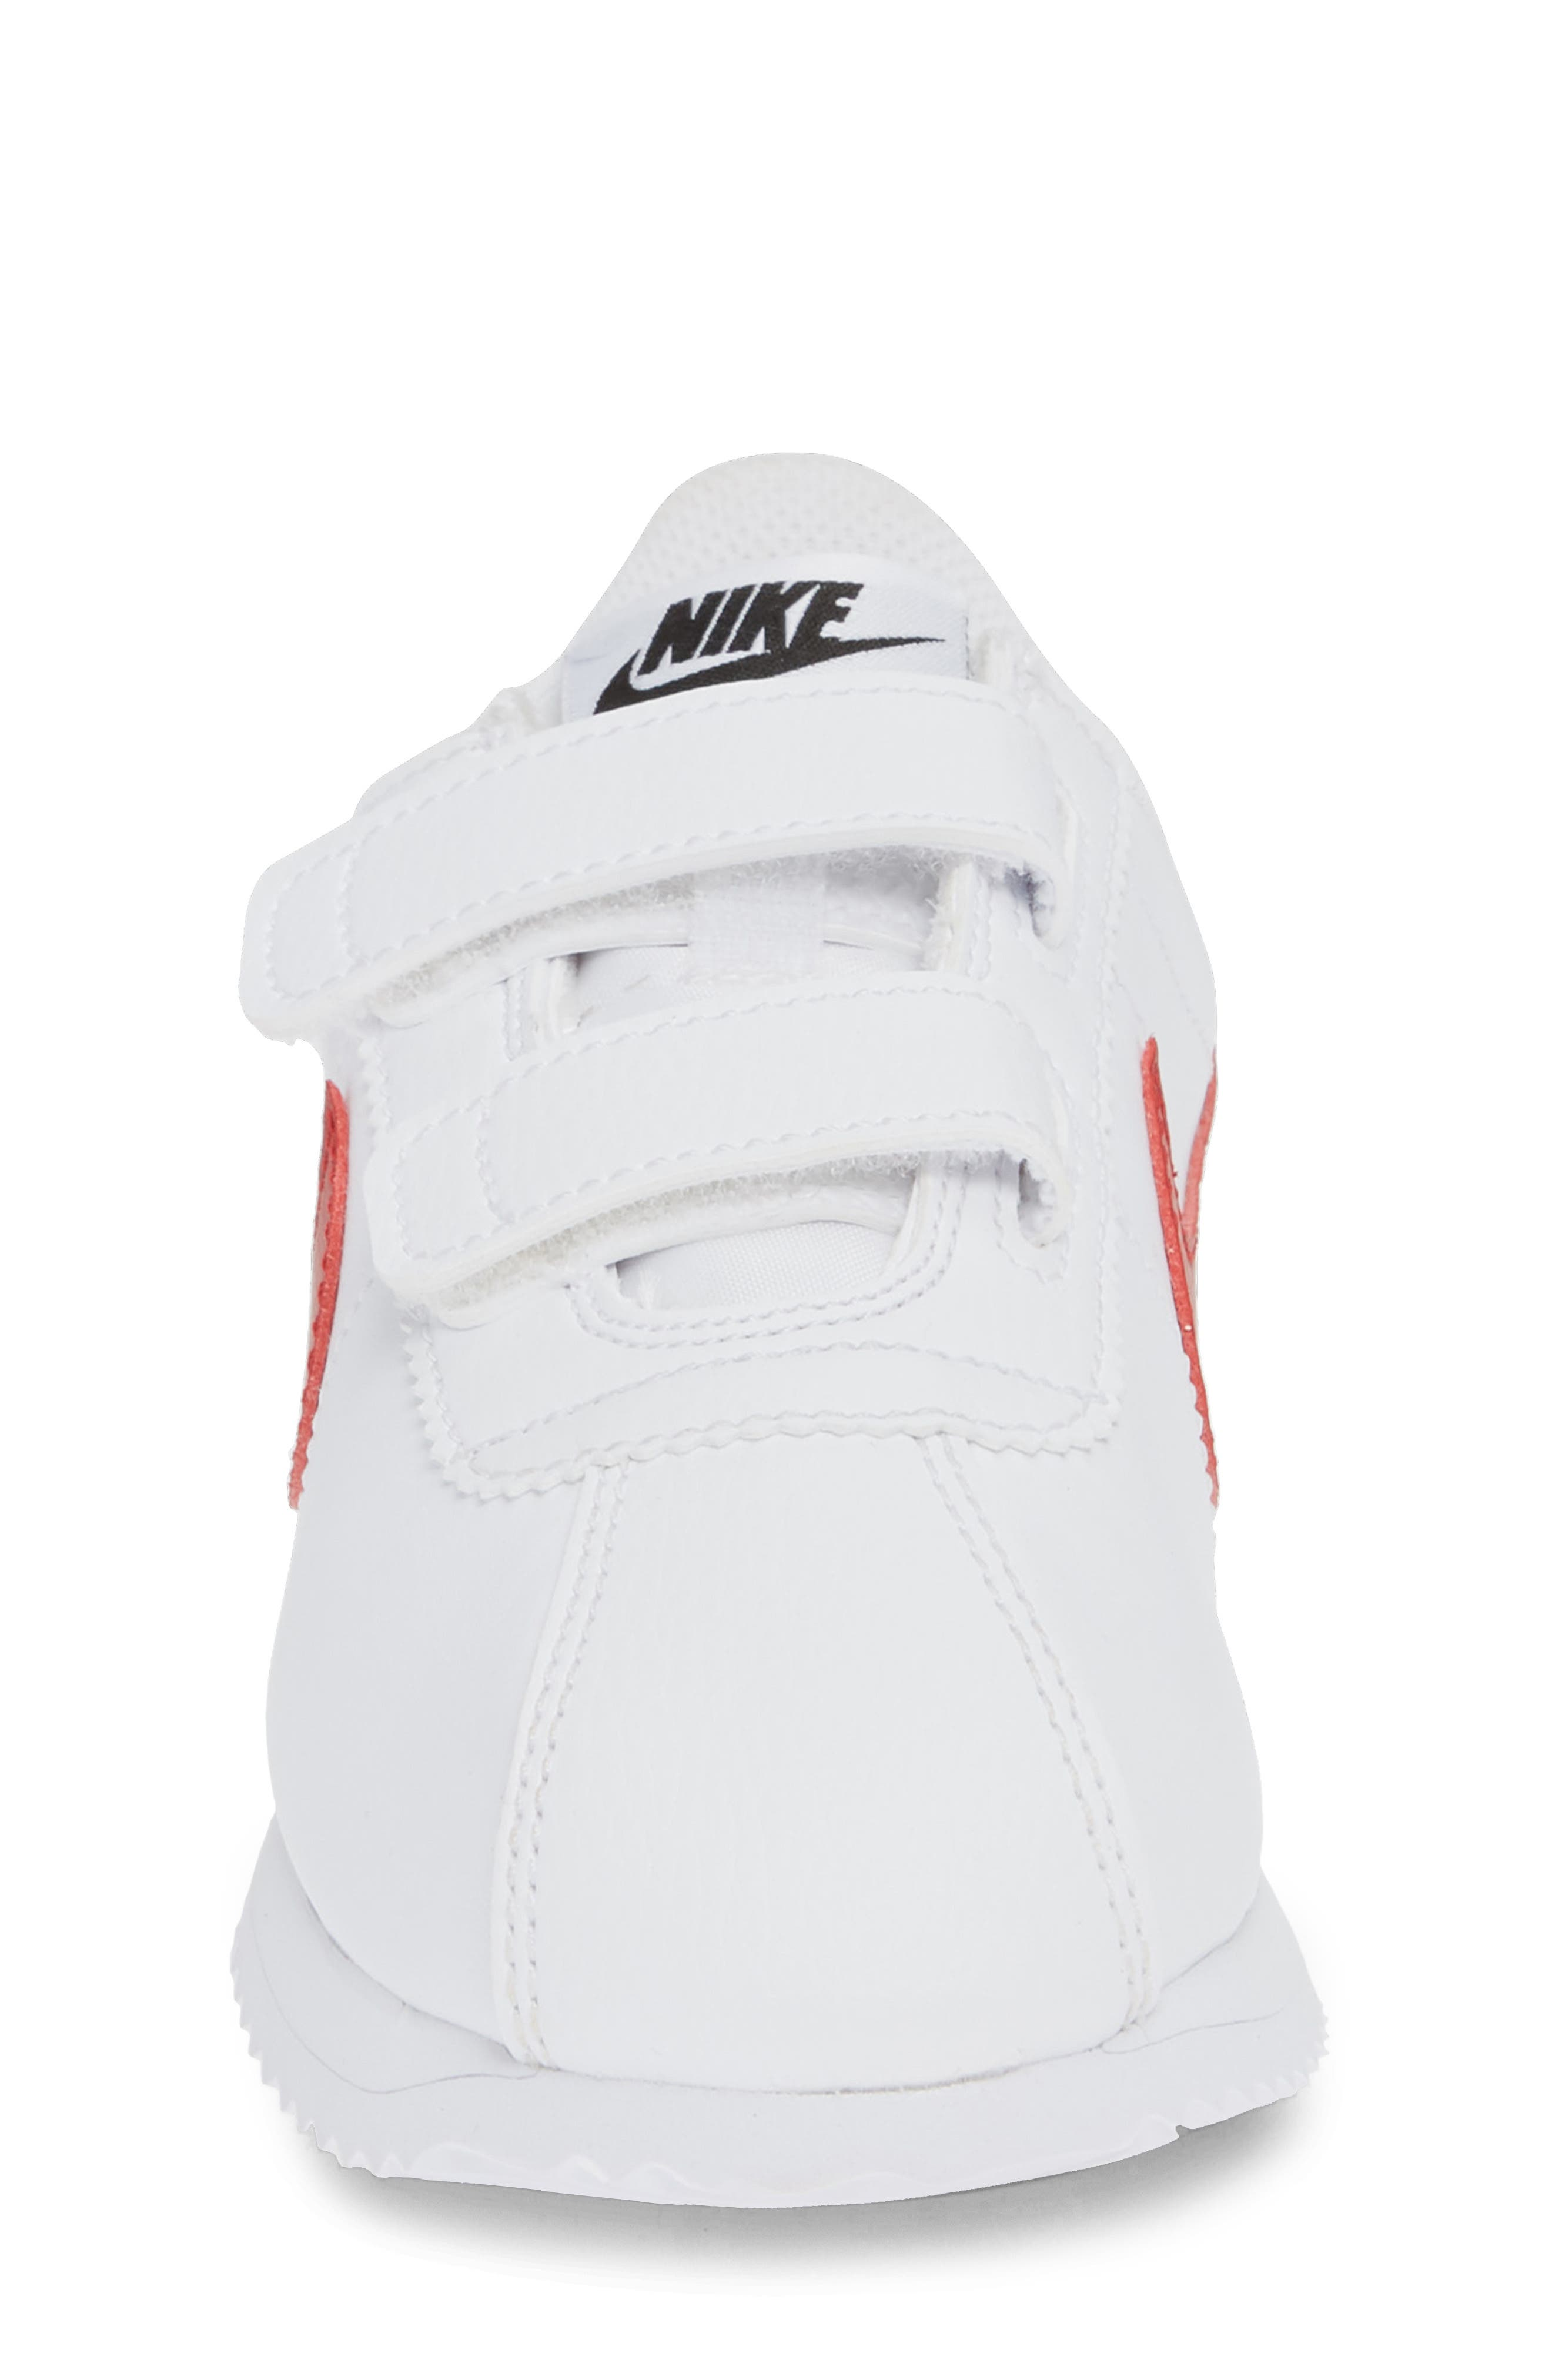 NIKE,                             Cortez Basic SL Sneaker,                             Alternate thumbnail 4, color,                             WHITE/ VARSITY RED/ BLACK